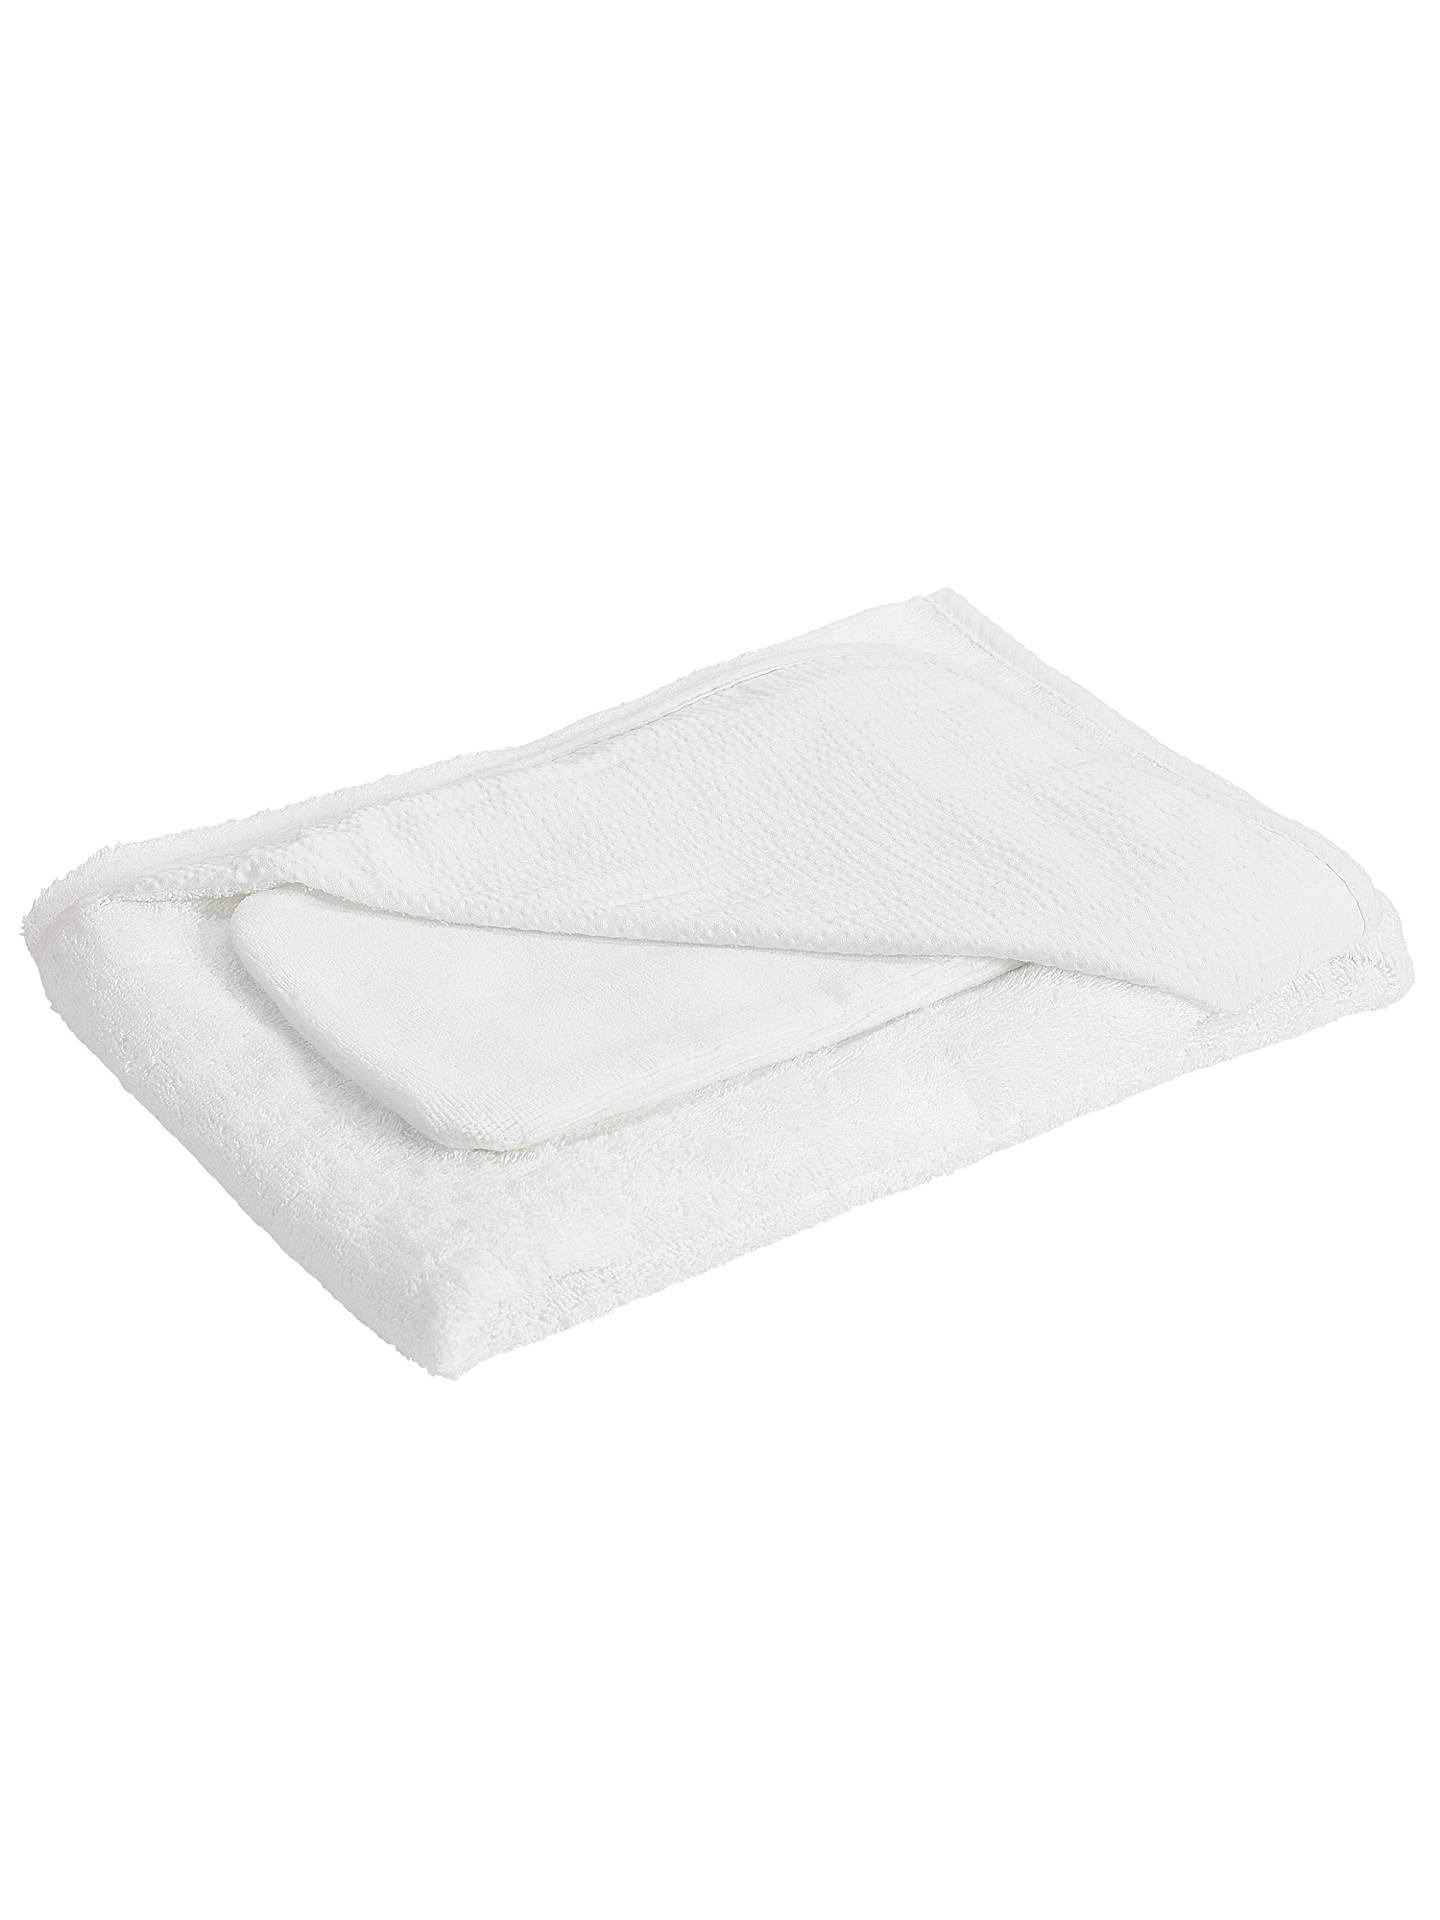 BuyJohn Lewis & Partners Seersucker Hooded Towels and Wash Mitt, Pack of 2, White Online at johnlewis.com